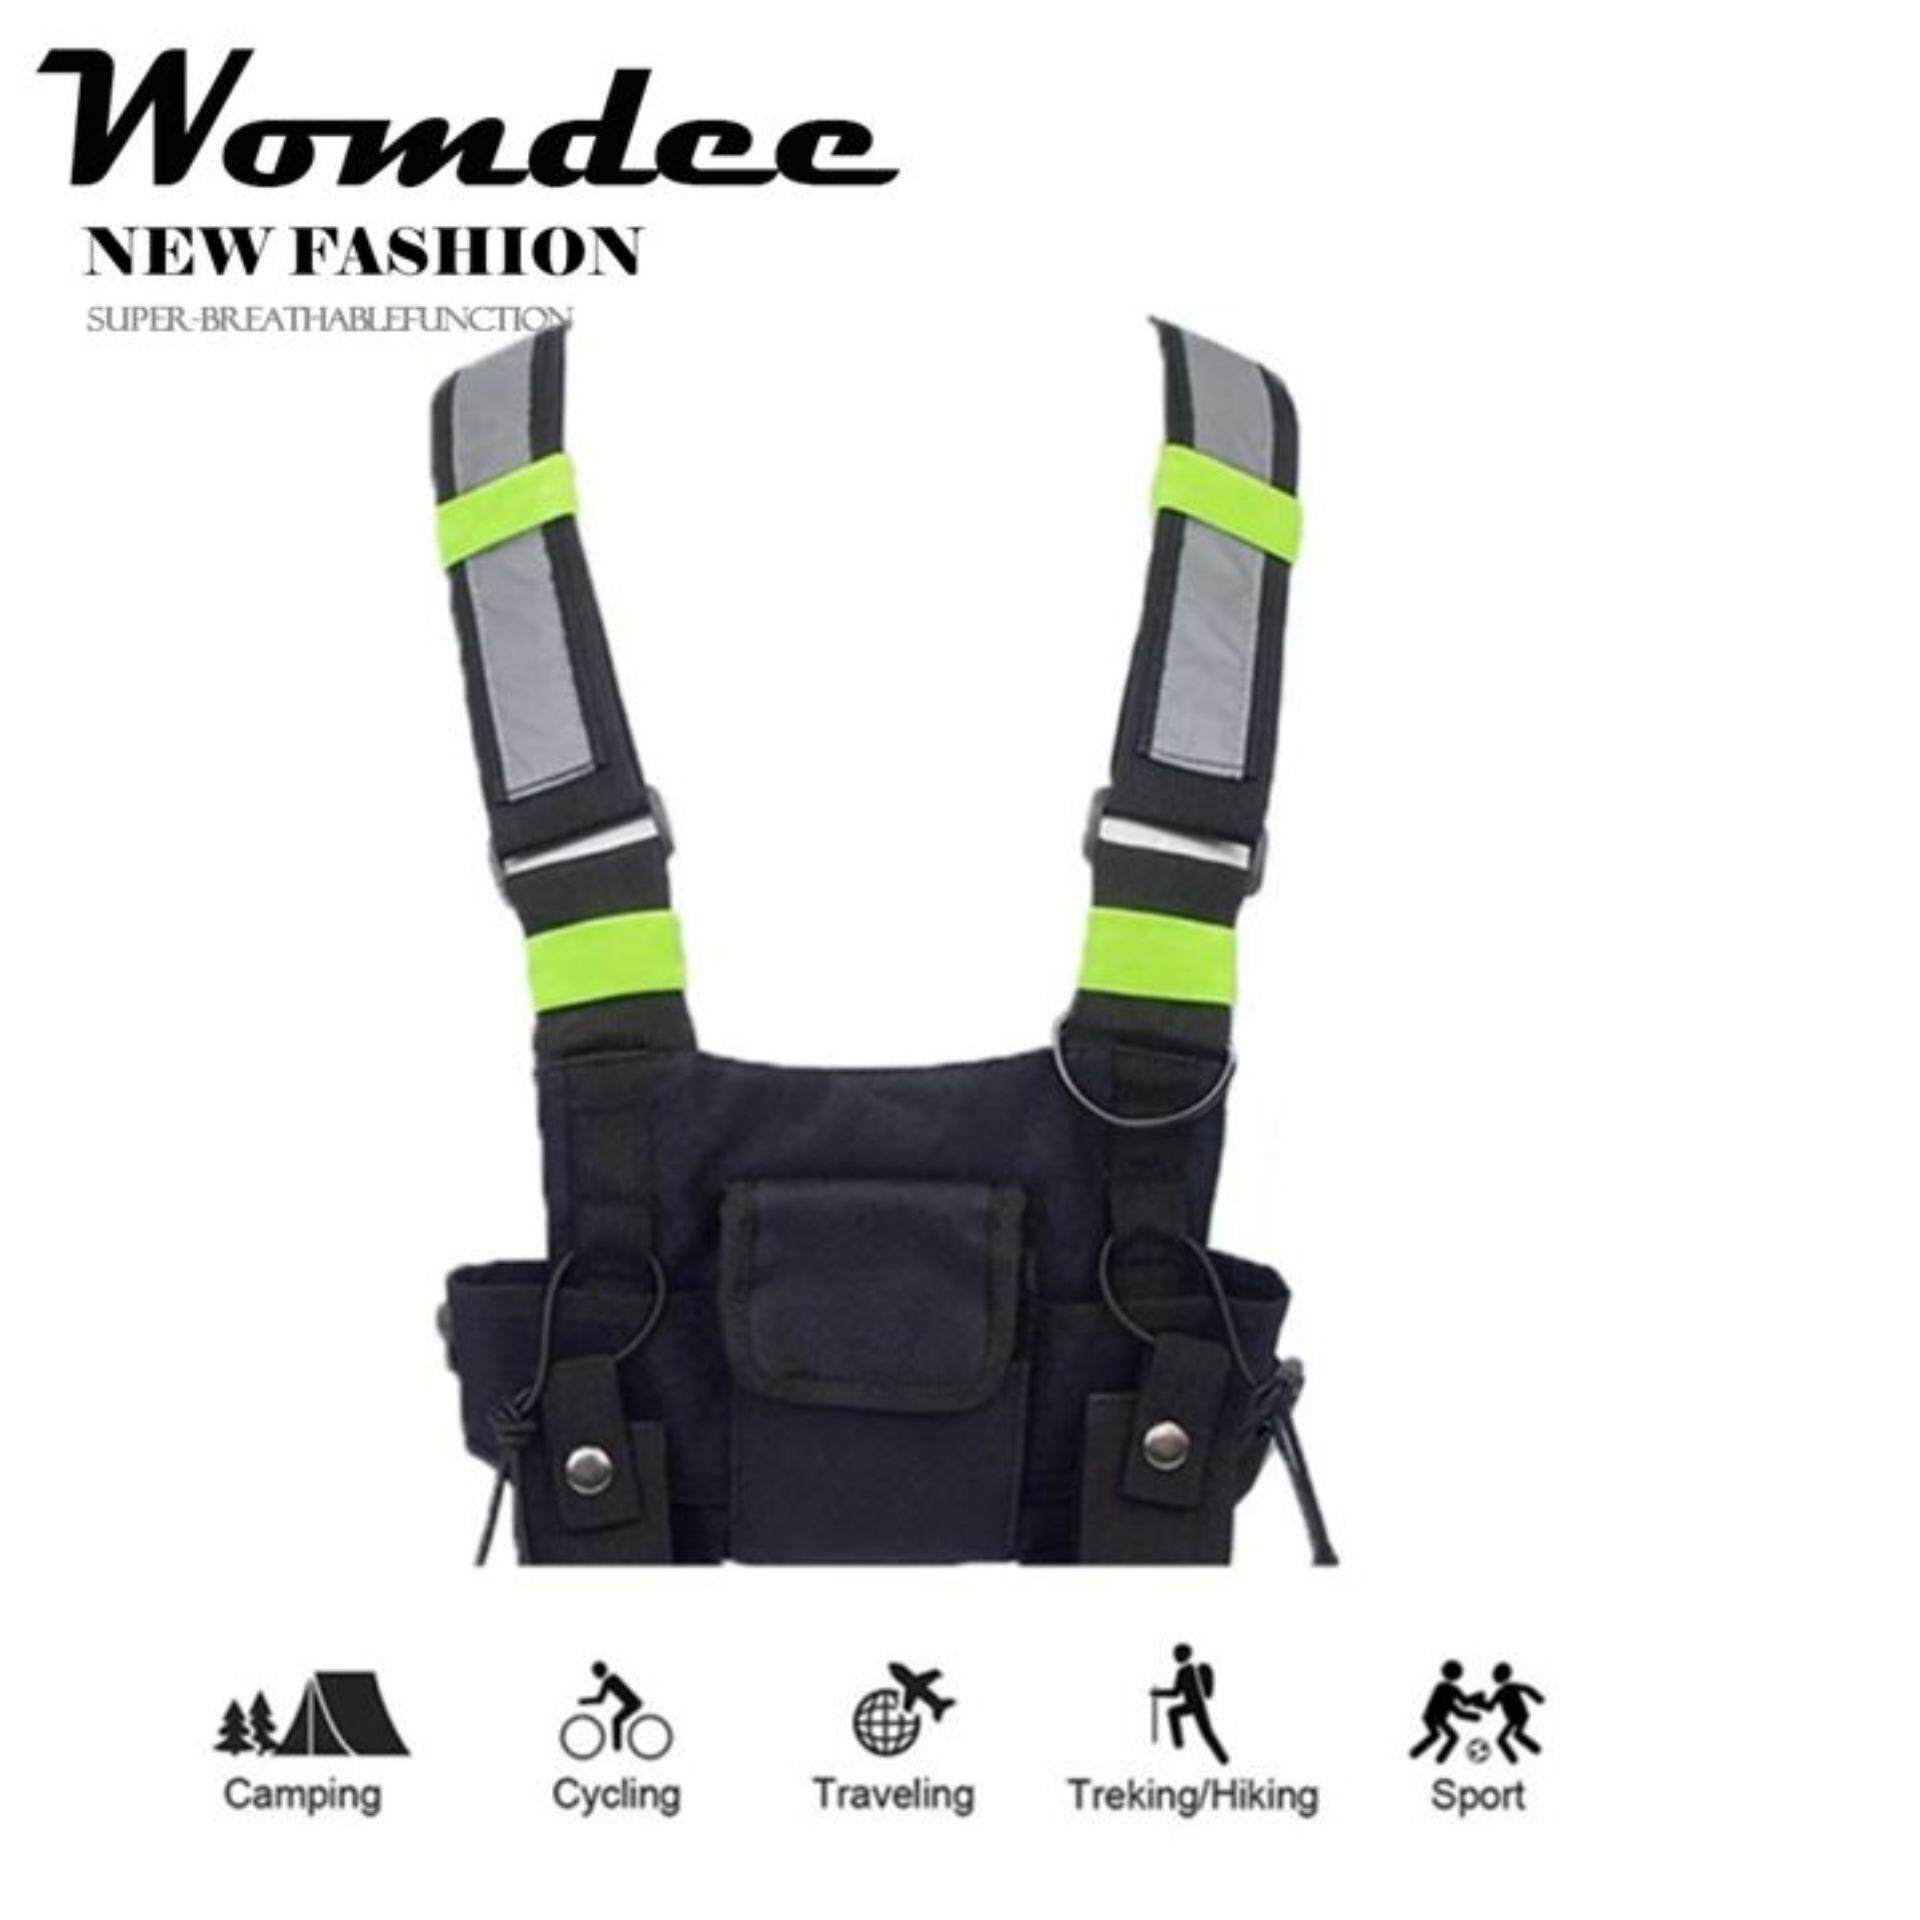 Bicycle Accessories 1 Pcs Unisex Outdoor Cycling Safety Vest Bike Ribbon Bicycle Light Reflecing Elastic Harness For Night Riding Running Jogging